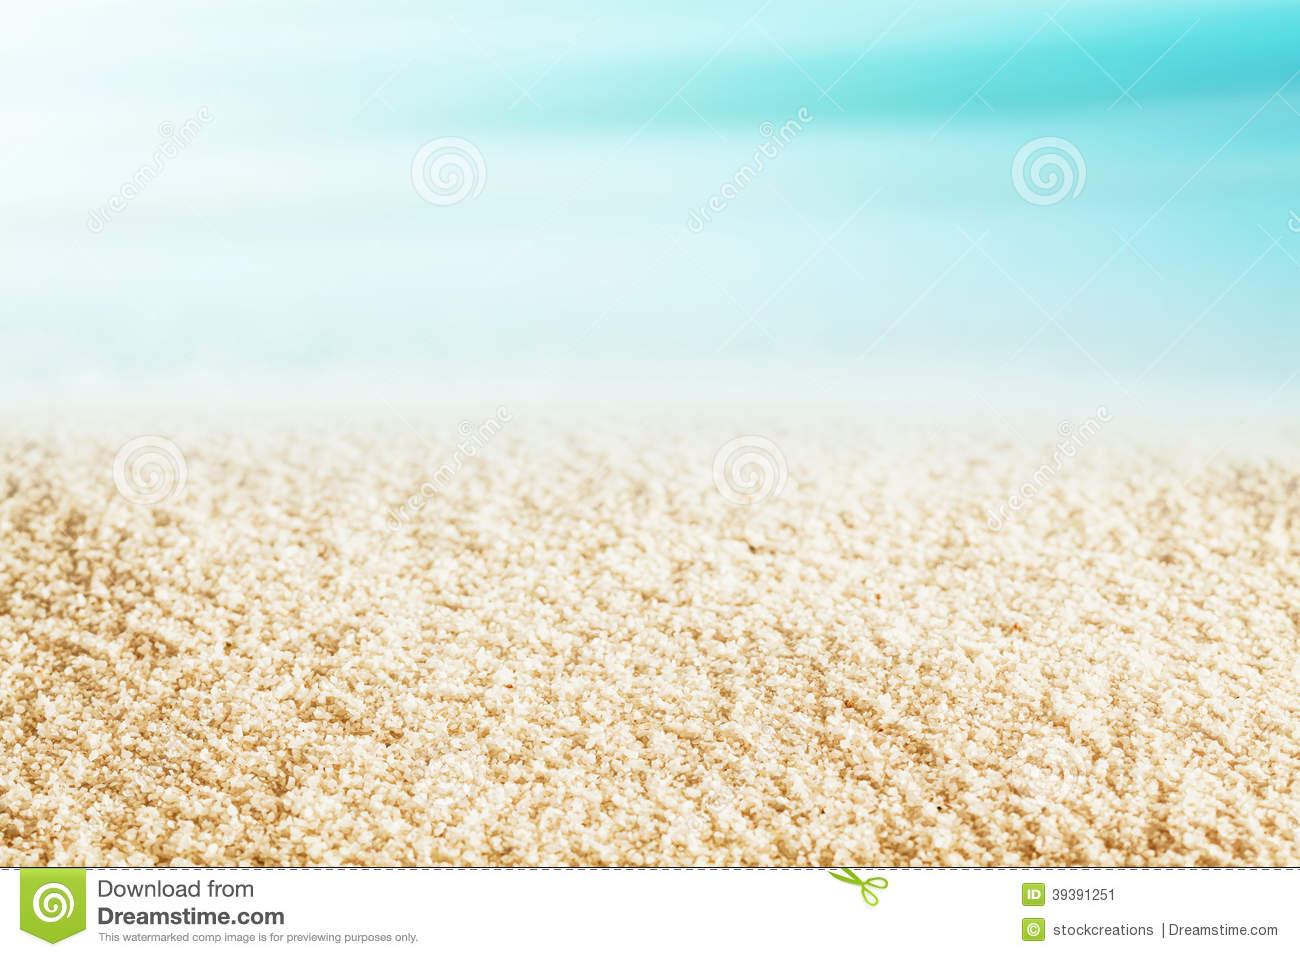 Seamless geometric texture stock photos image 27928433 - Golden Beach Sand Texture On A Tropical Beach Stock Photo Image